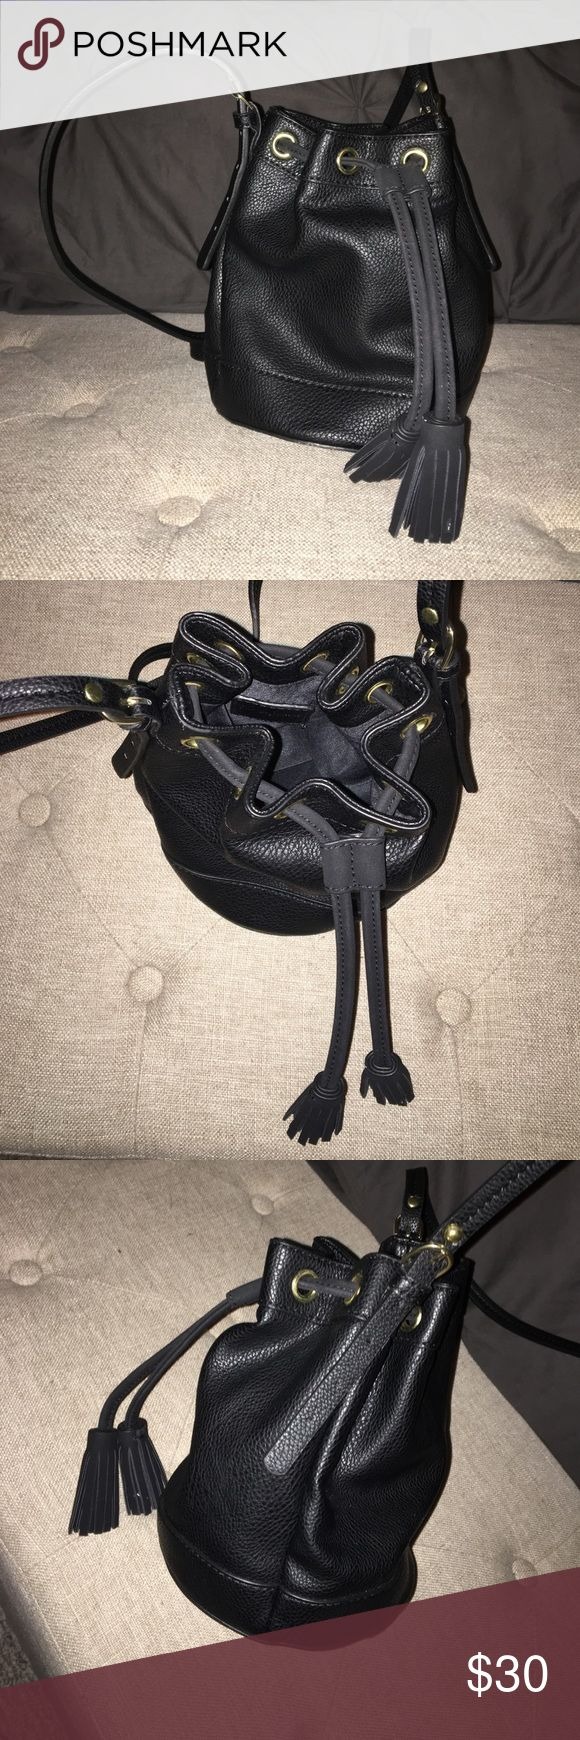 Neiman Marcus Last Call Side Tassel Bucket Bag (s) Black Neiman Marcus (Last Call) bucket bag with tassel drawstring. Adjustable strap. One pocket inside. Never used and new. Small size. Neiman Marcus Bags Shoulder Bags